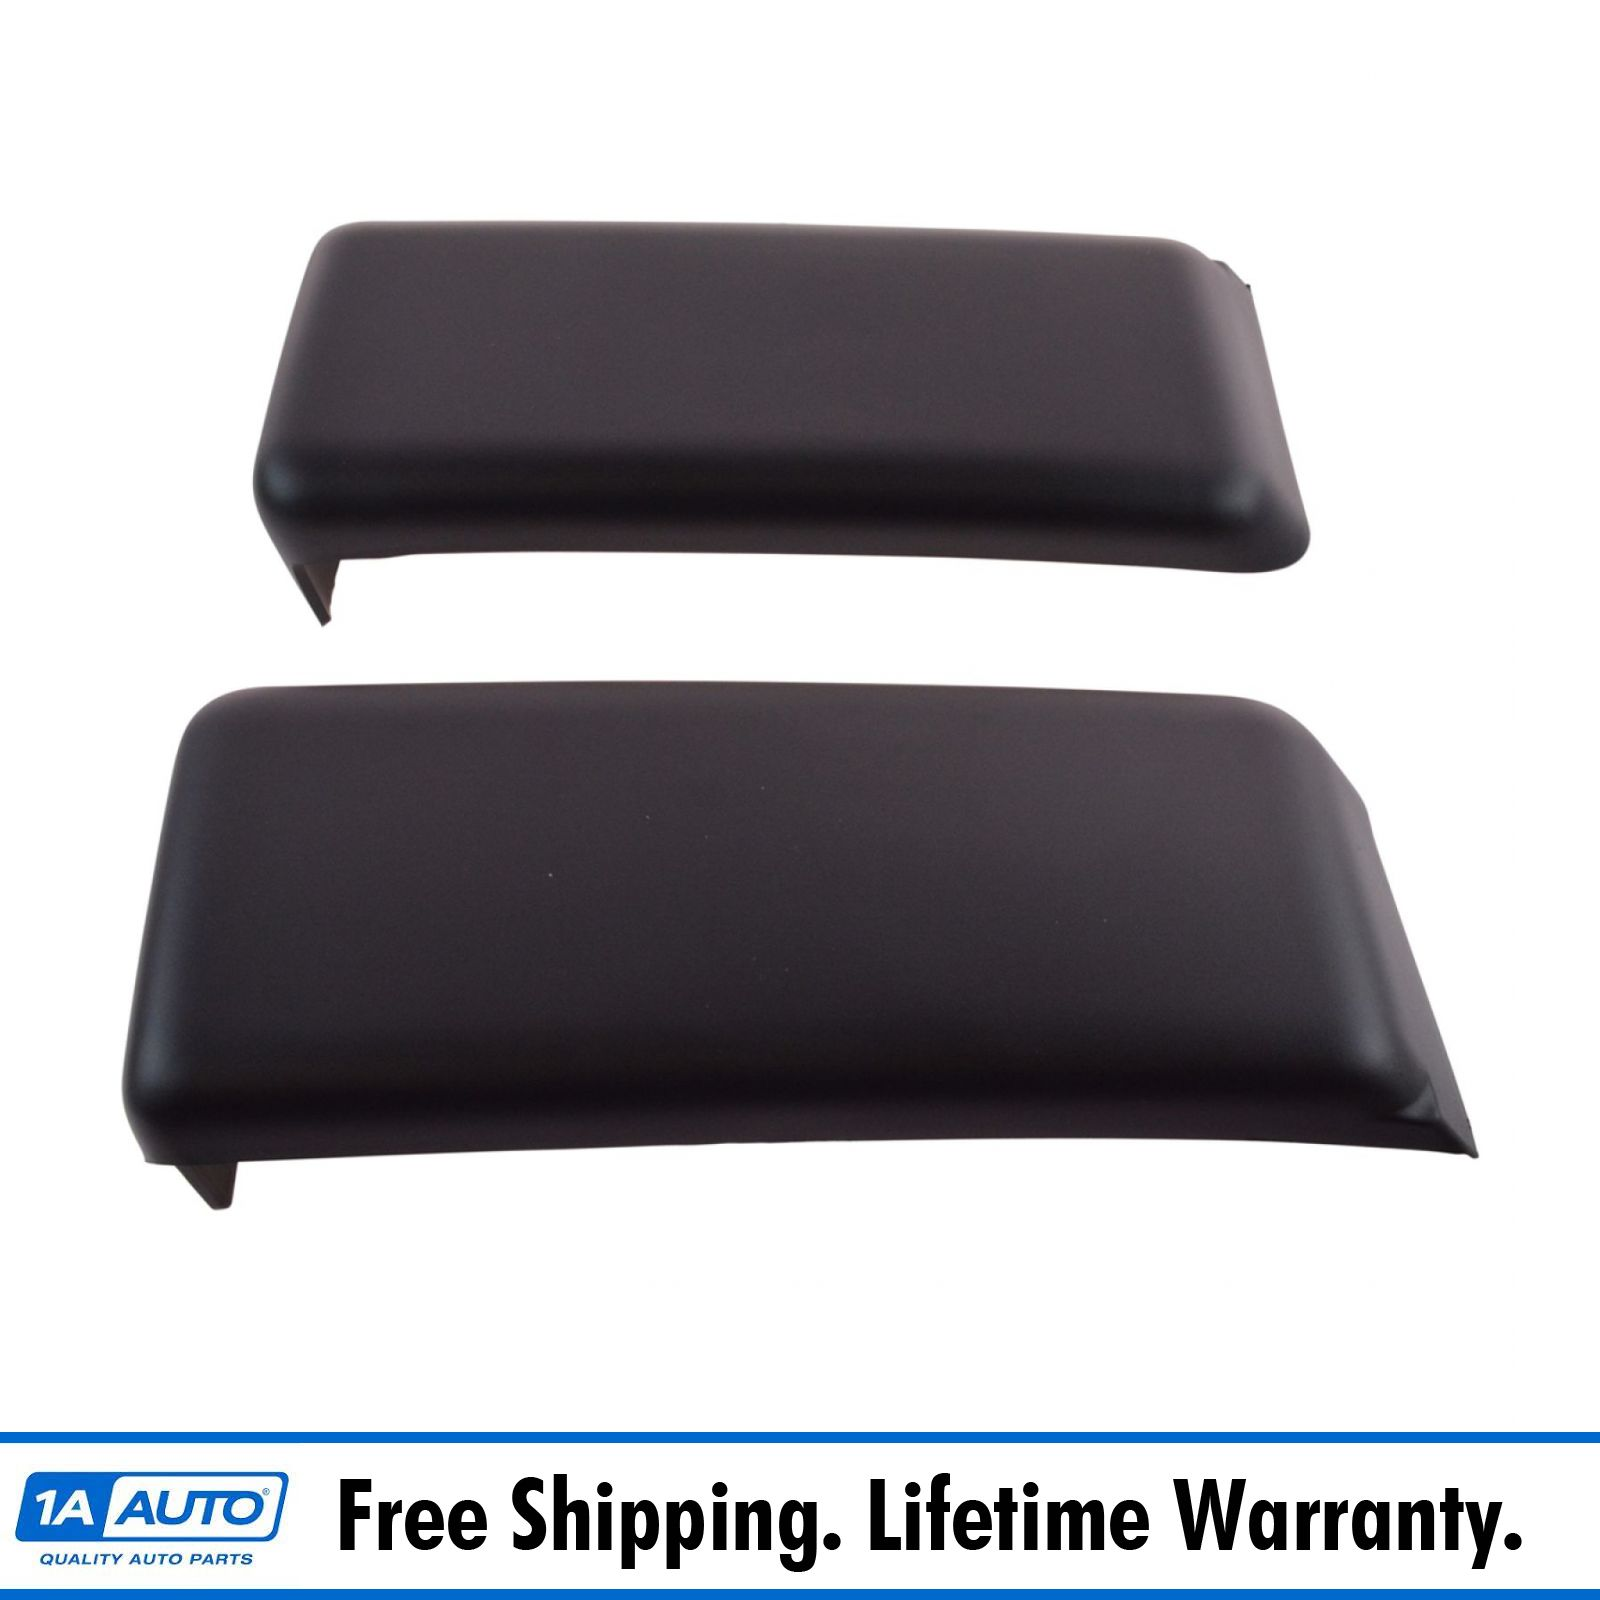 Front Bumper Pad Guard Insert Pair LH /& RH Sides Textured Black for Ford F150